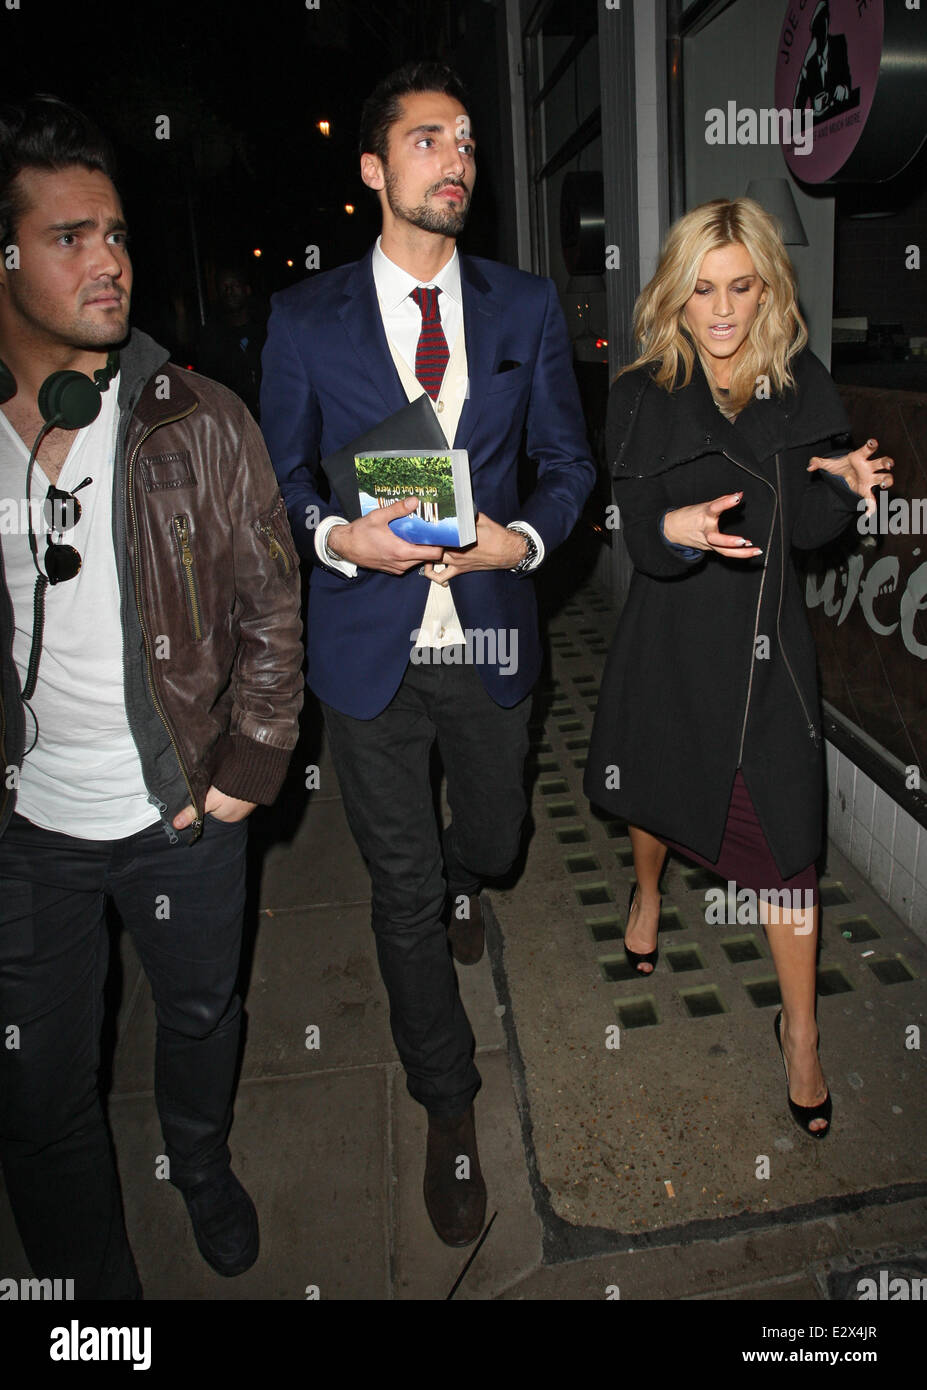 Celebrities at the Groucho club  Featuring: Hugo Taylor,Ashley Roberts Where: London, United Kingdom When: 19 Mar - Stock Image